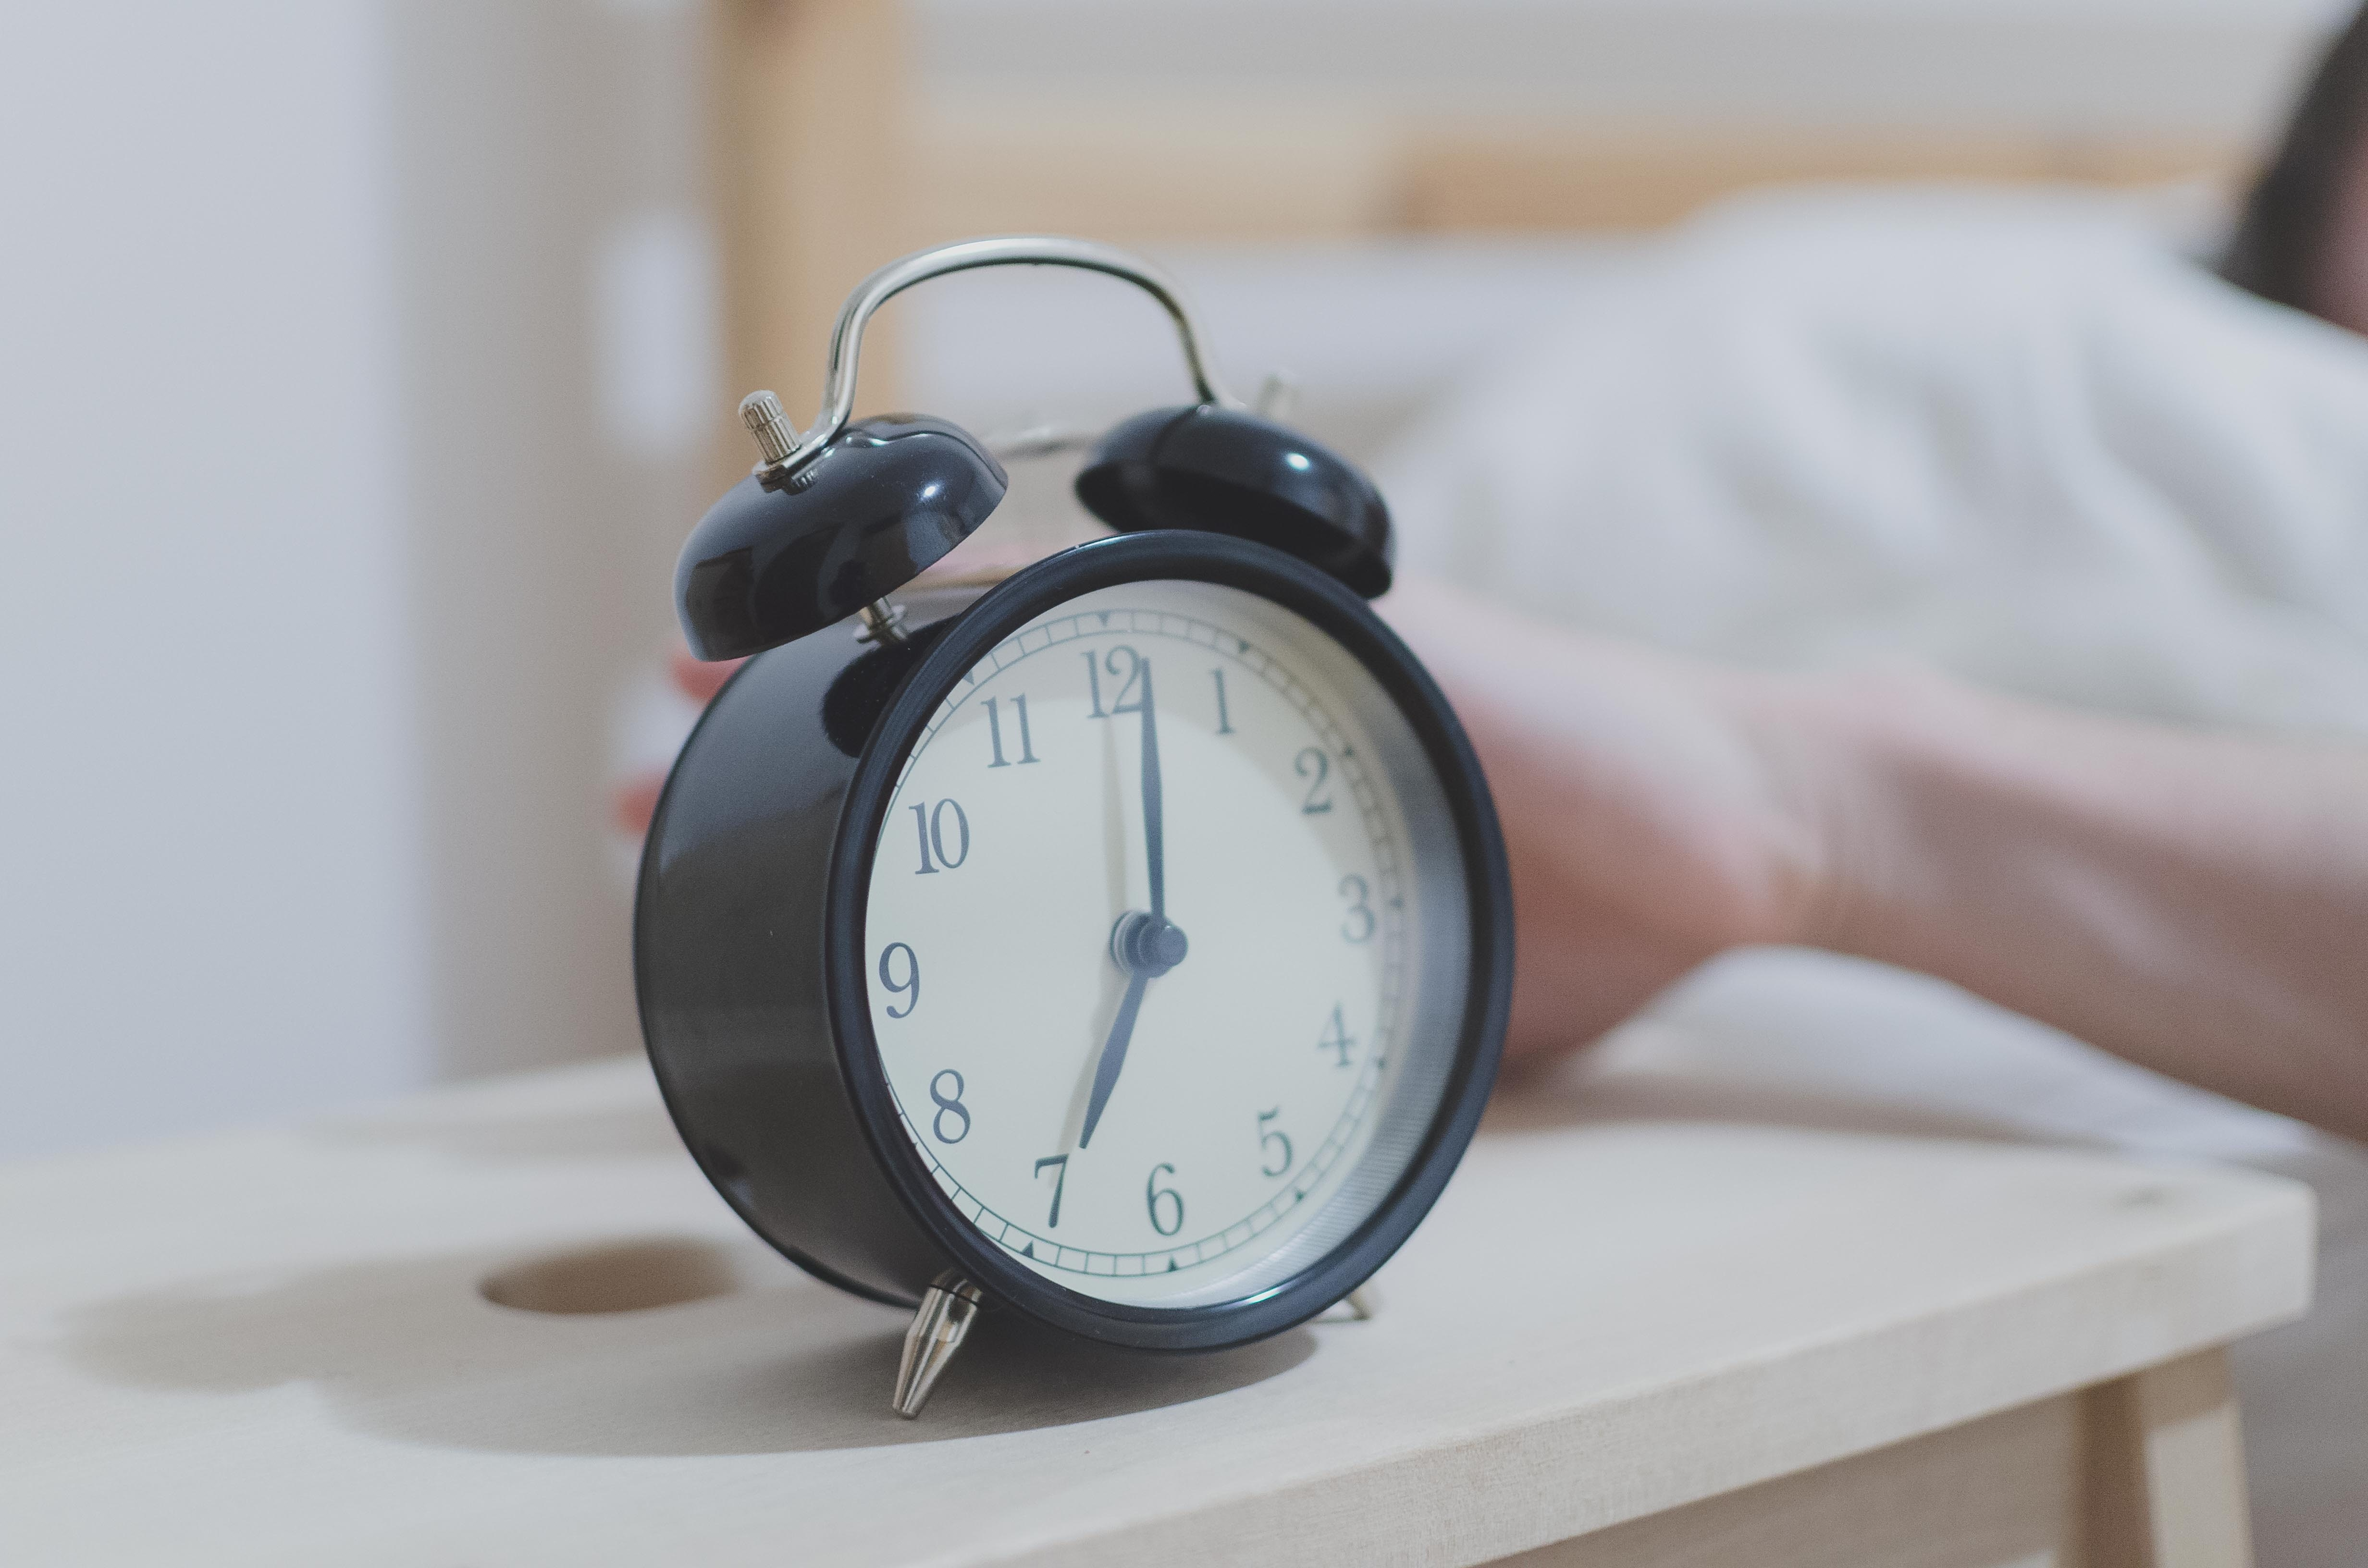 5 Things Not to Do in the Morning If You Want to Have a Good Day